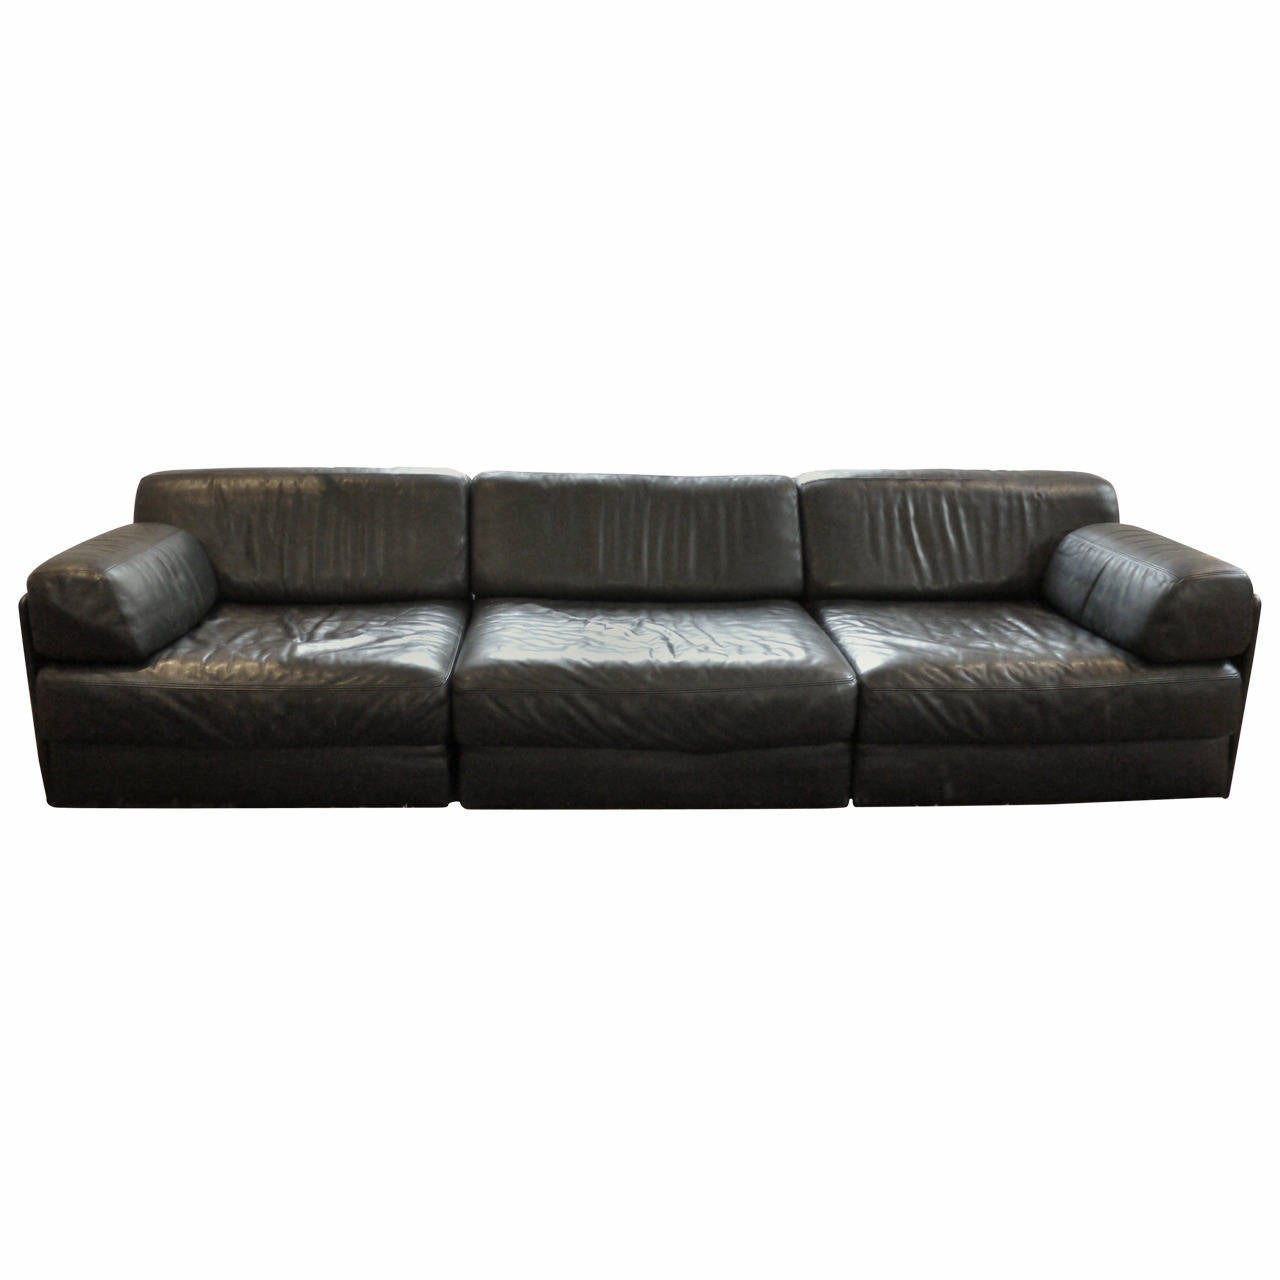 de sede ds76 sofa at 1stdibs. Black Bedroom Furniture Sets. Home Design Ideas